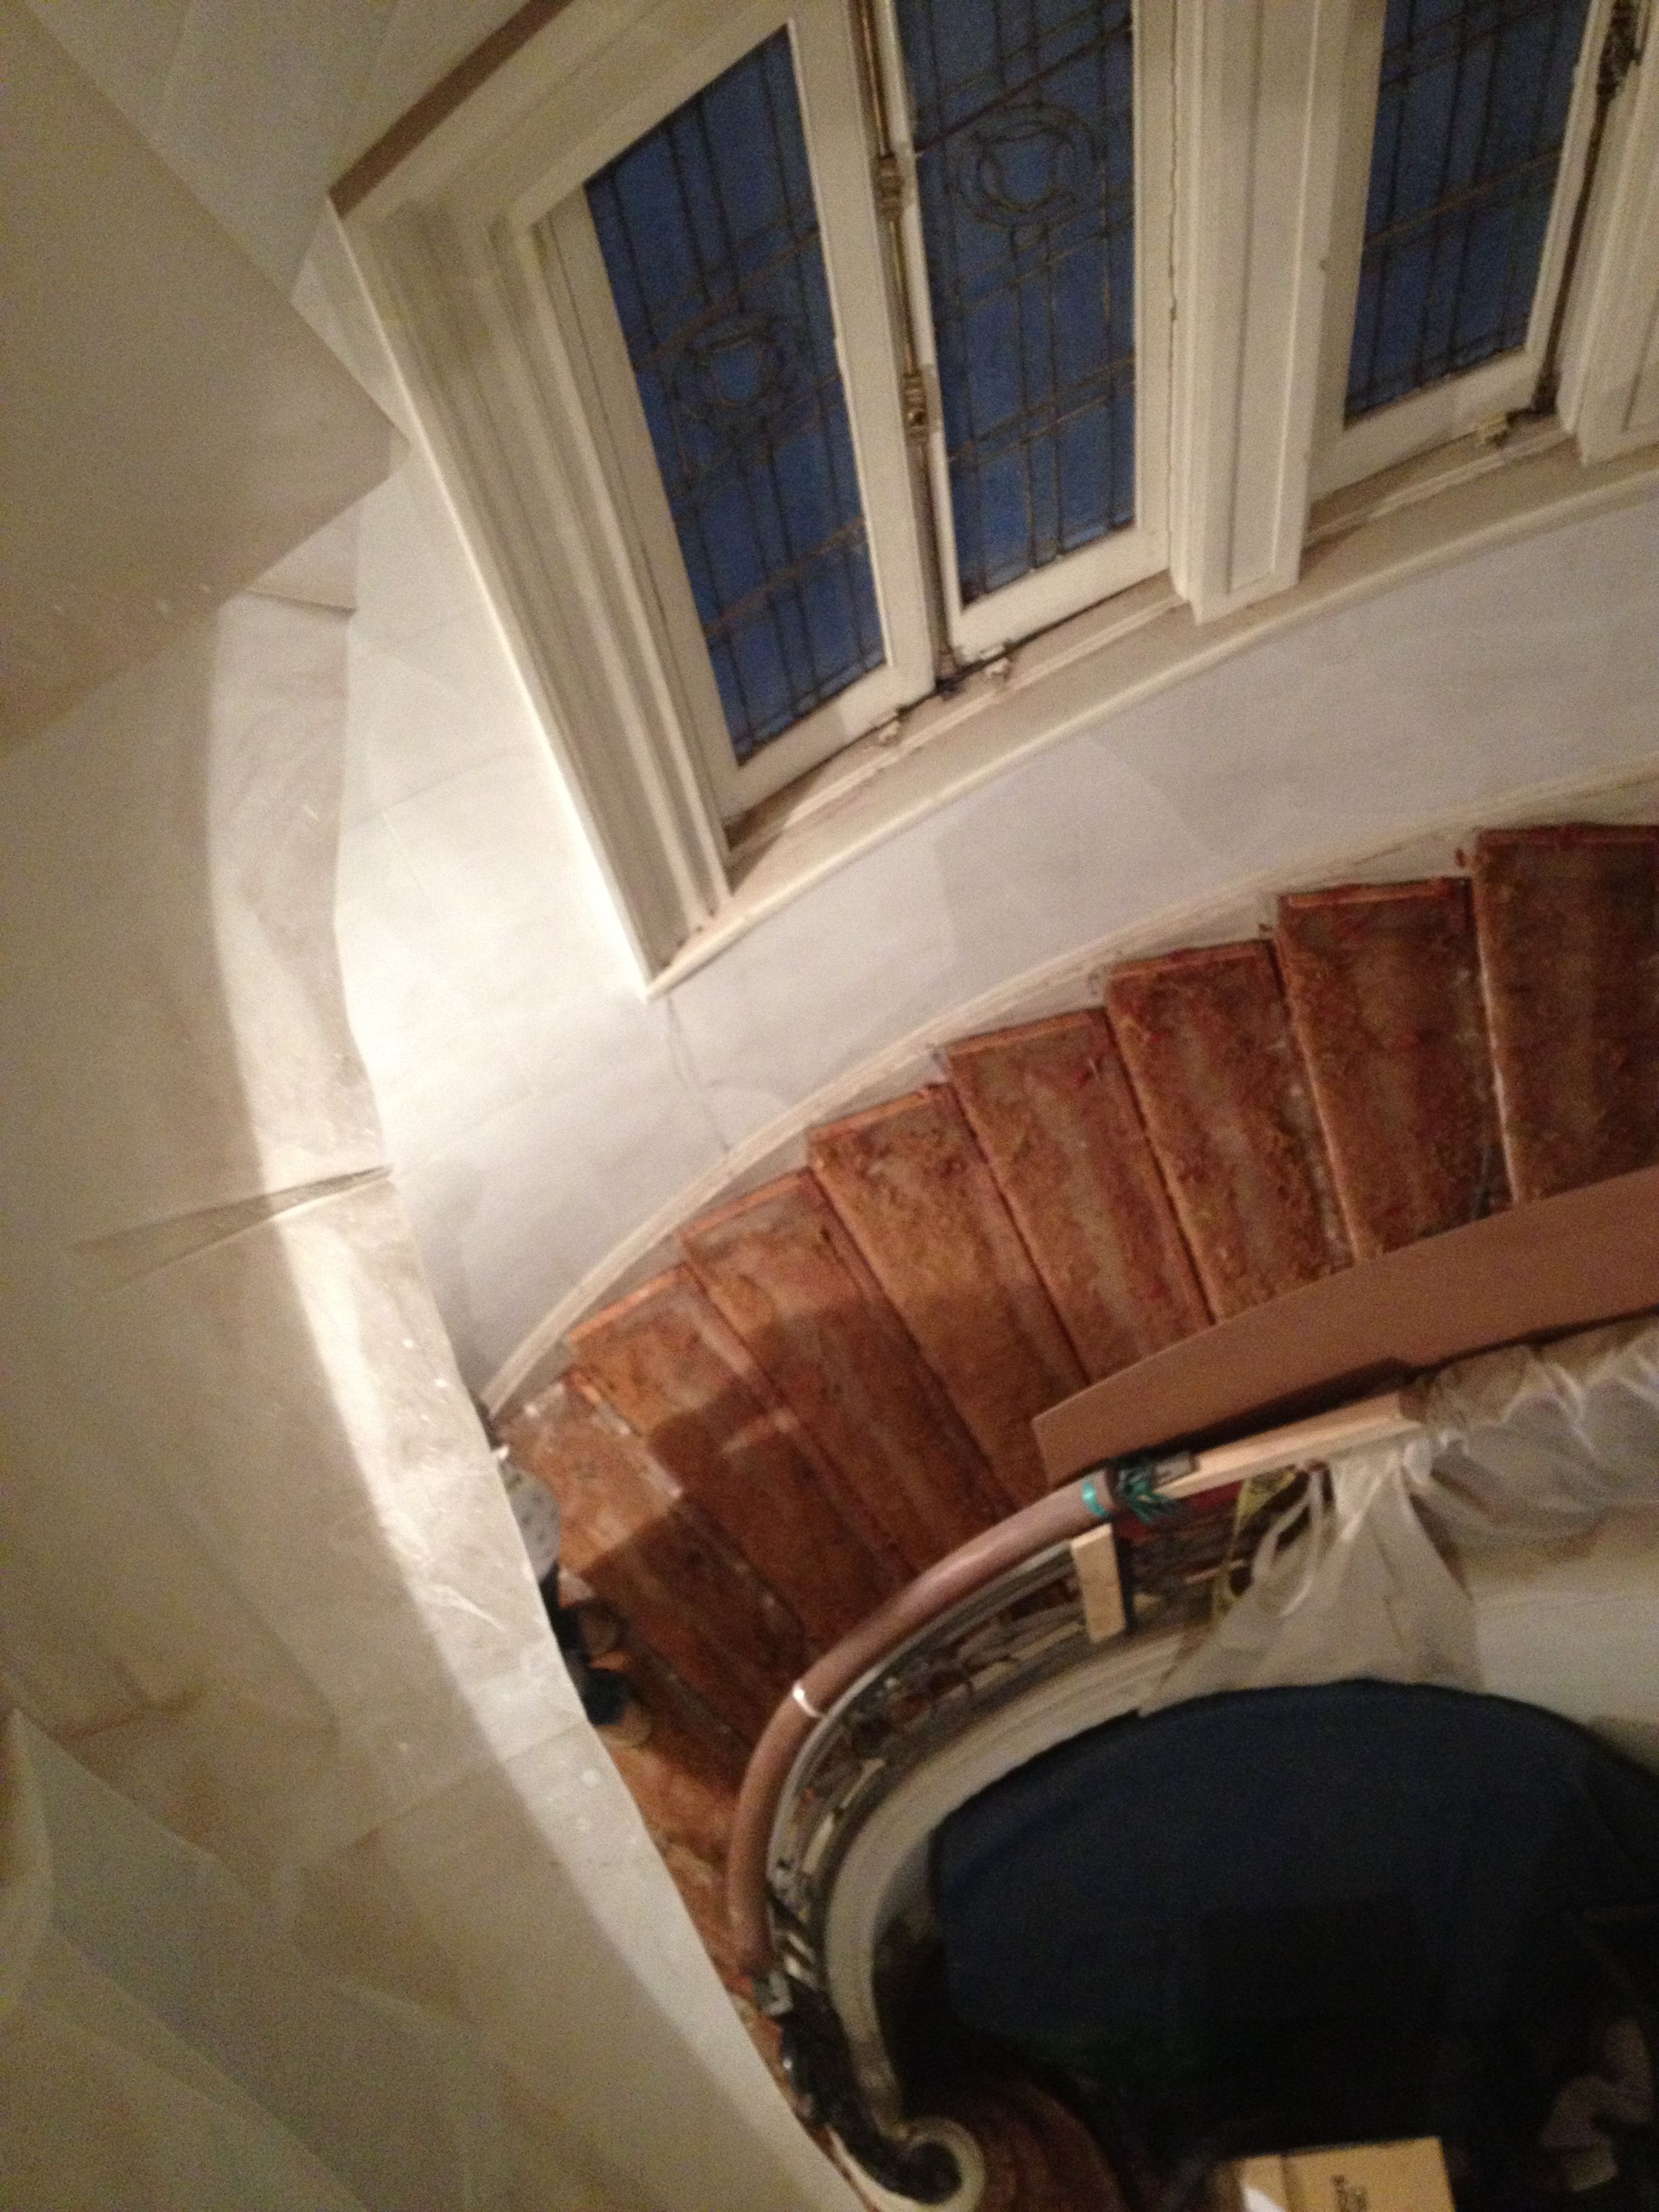 OVAL STAIR - Full oval stair renovation and railing addition.